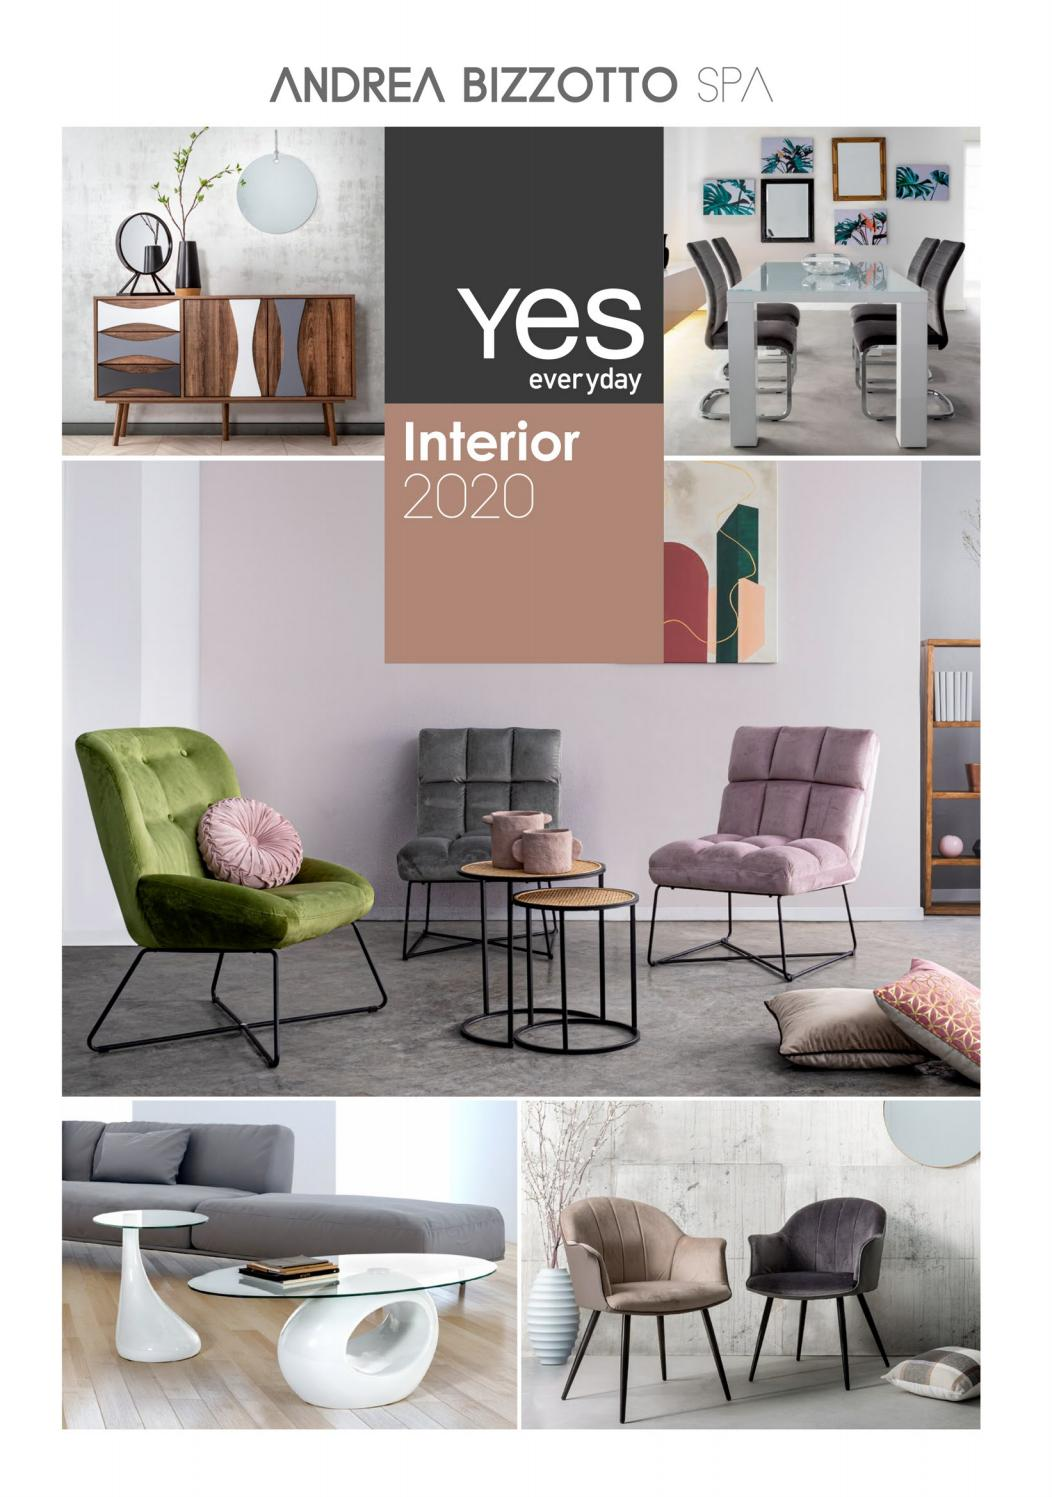 Catalogo Yes Interior 2020 It En By Andrea Bizzotto S P A Issuu